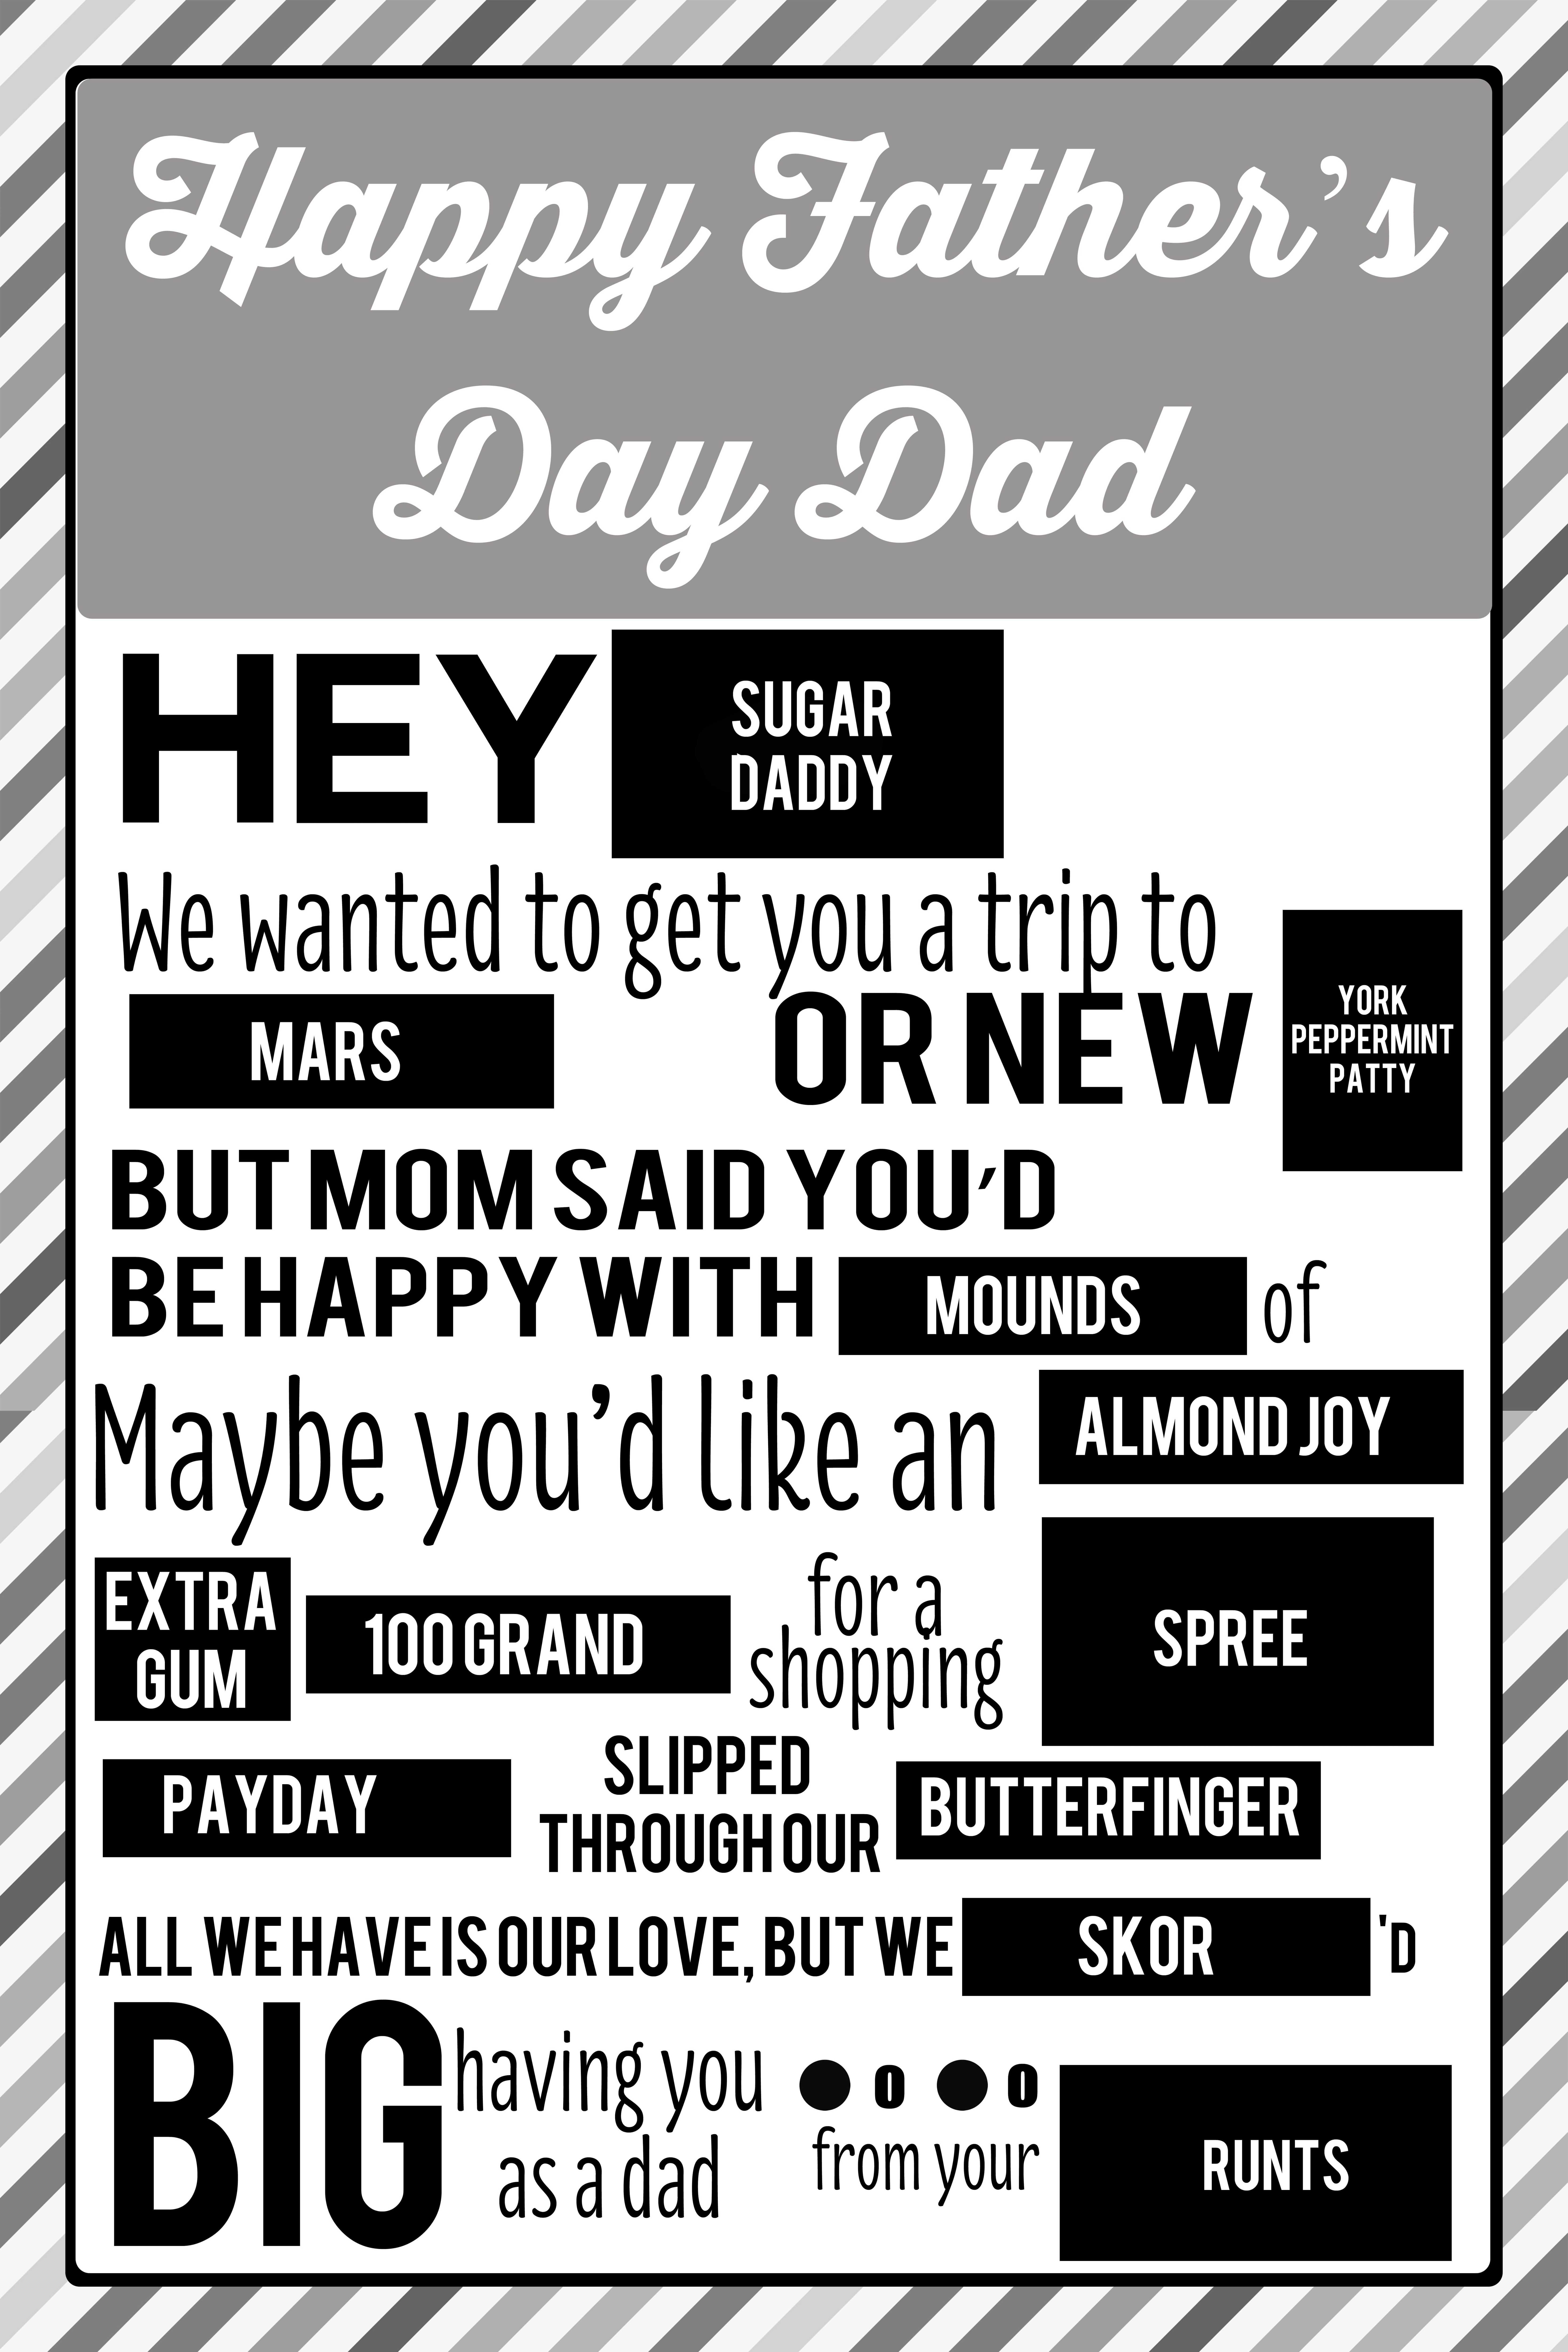 FREE Father's Day Candy Gram Posters! The Dating Divas